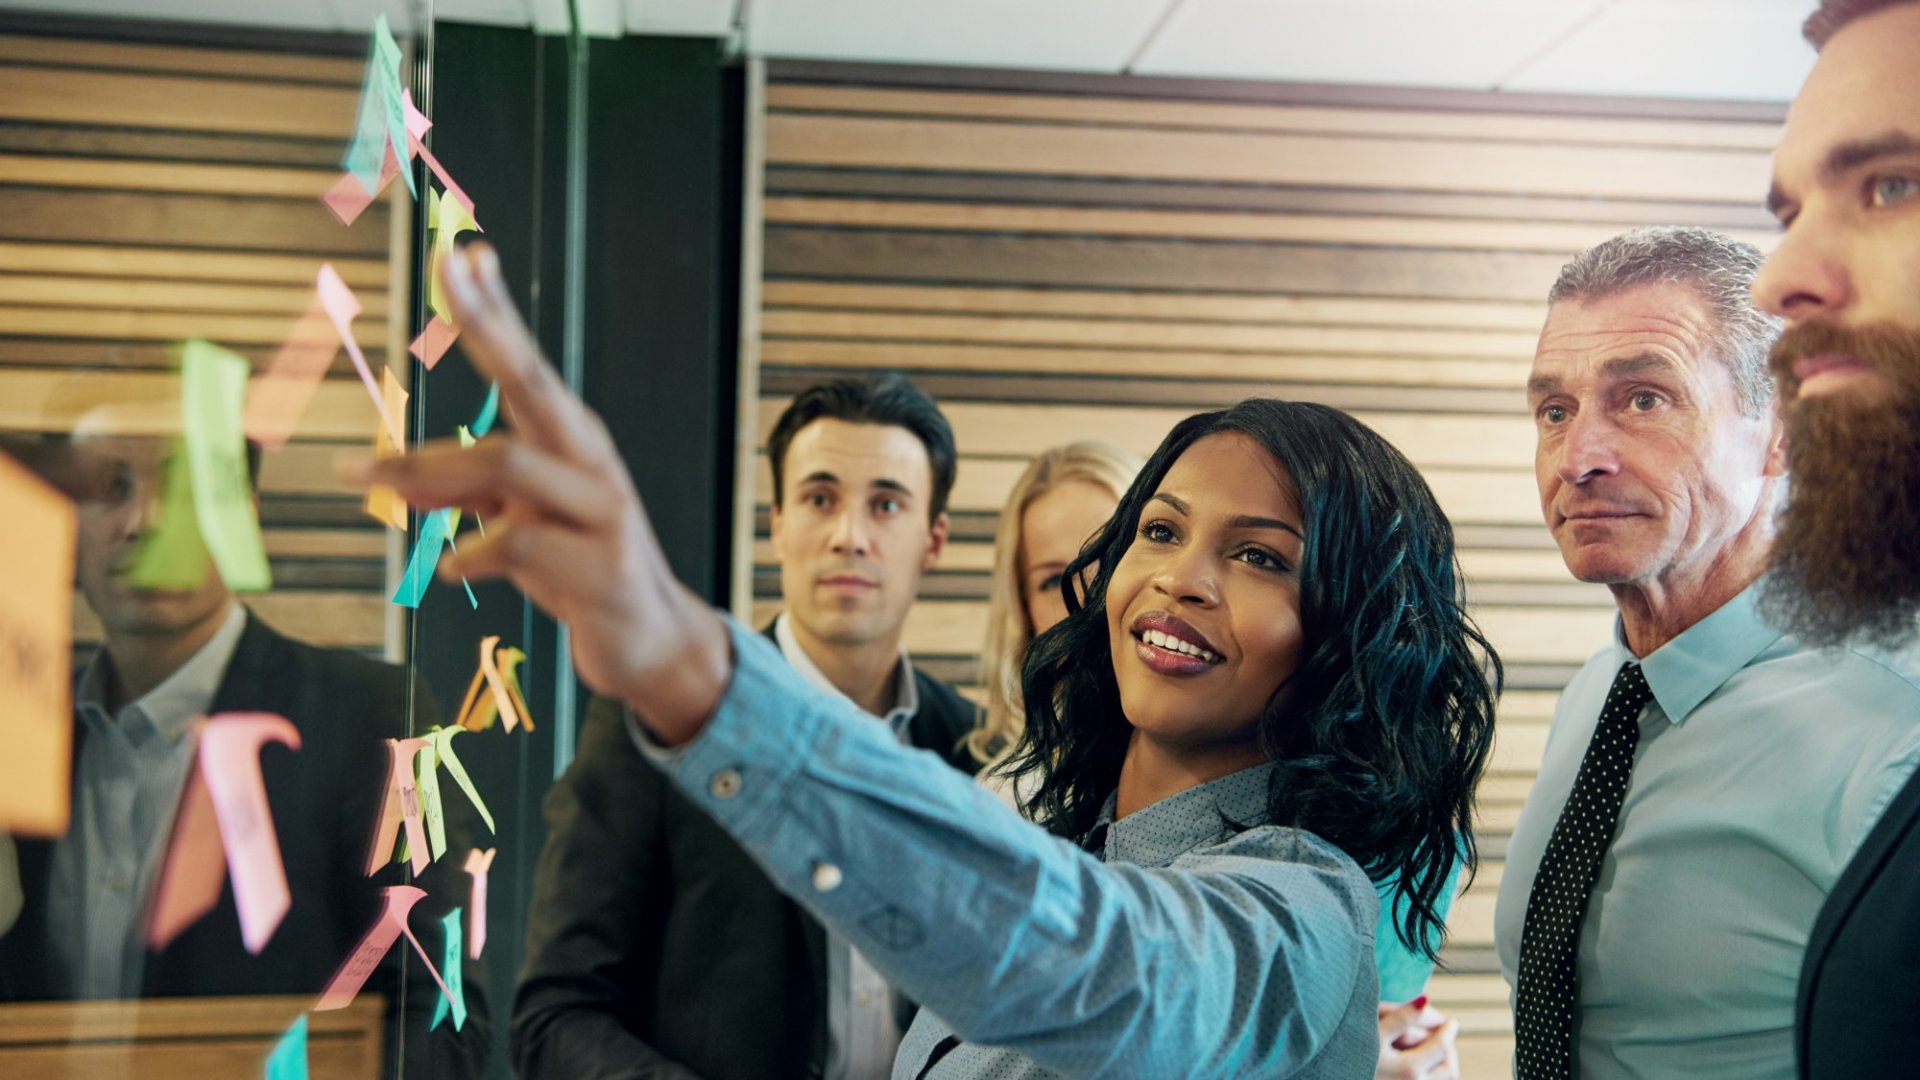 How to Be an Effective Leader When Your Employees Have More Experience Than You